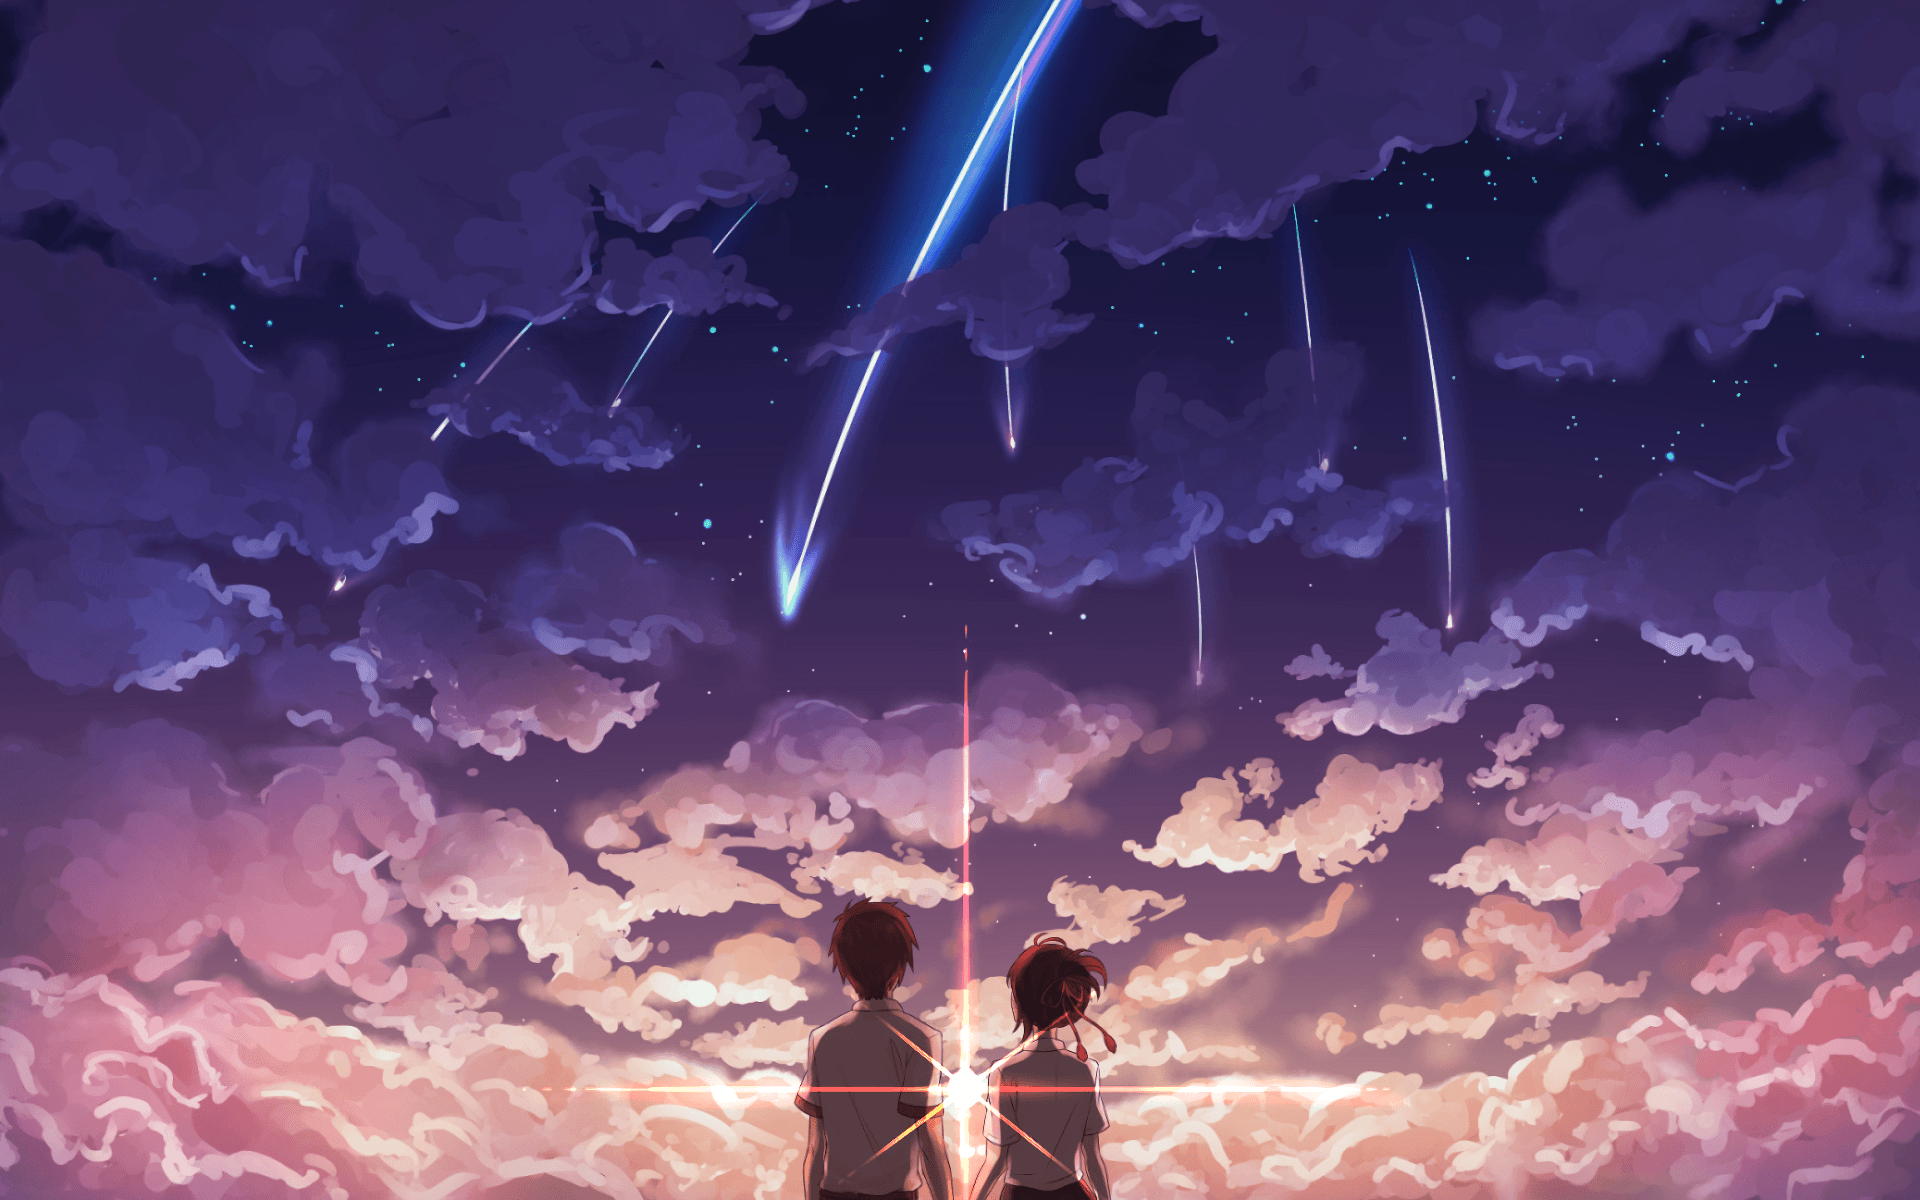 Your name matching wallpapers ♡. Anime Your Name PC 4K Wallpapers - Wallpaper Cave